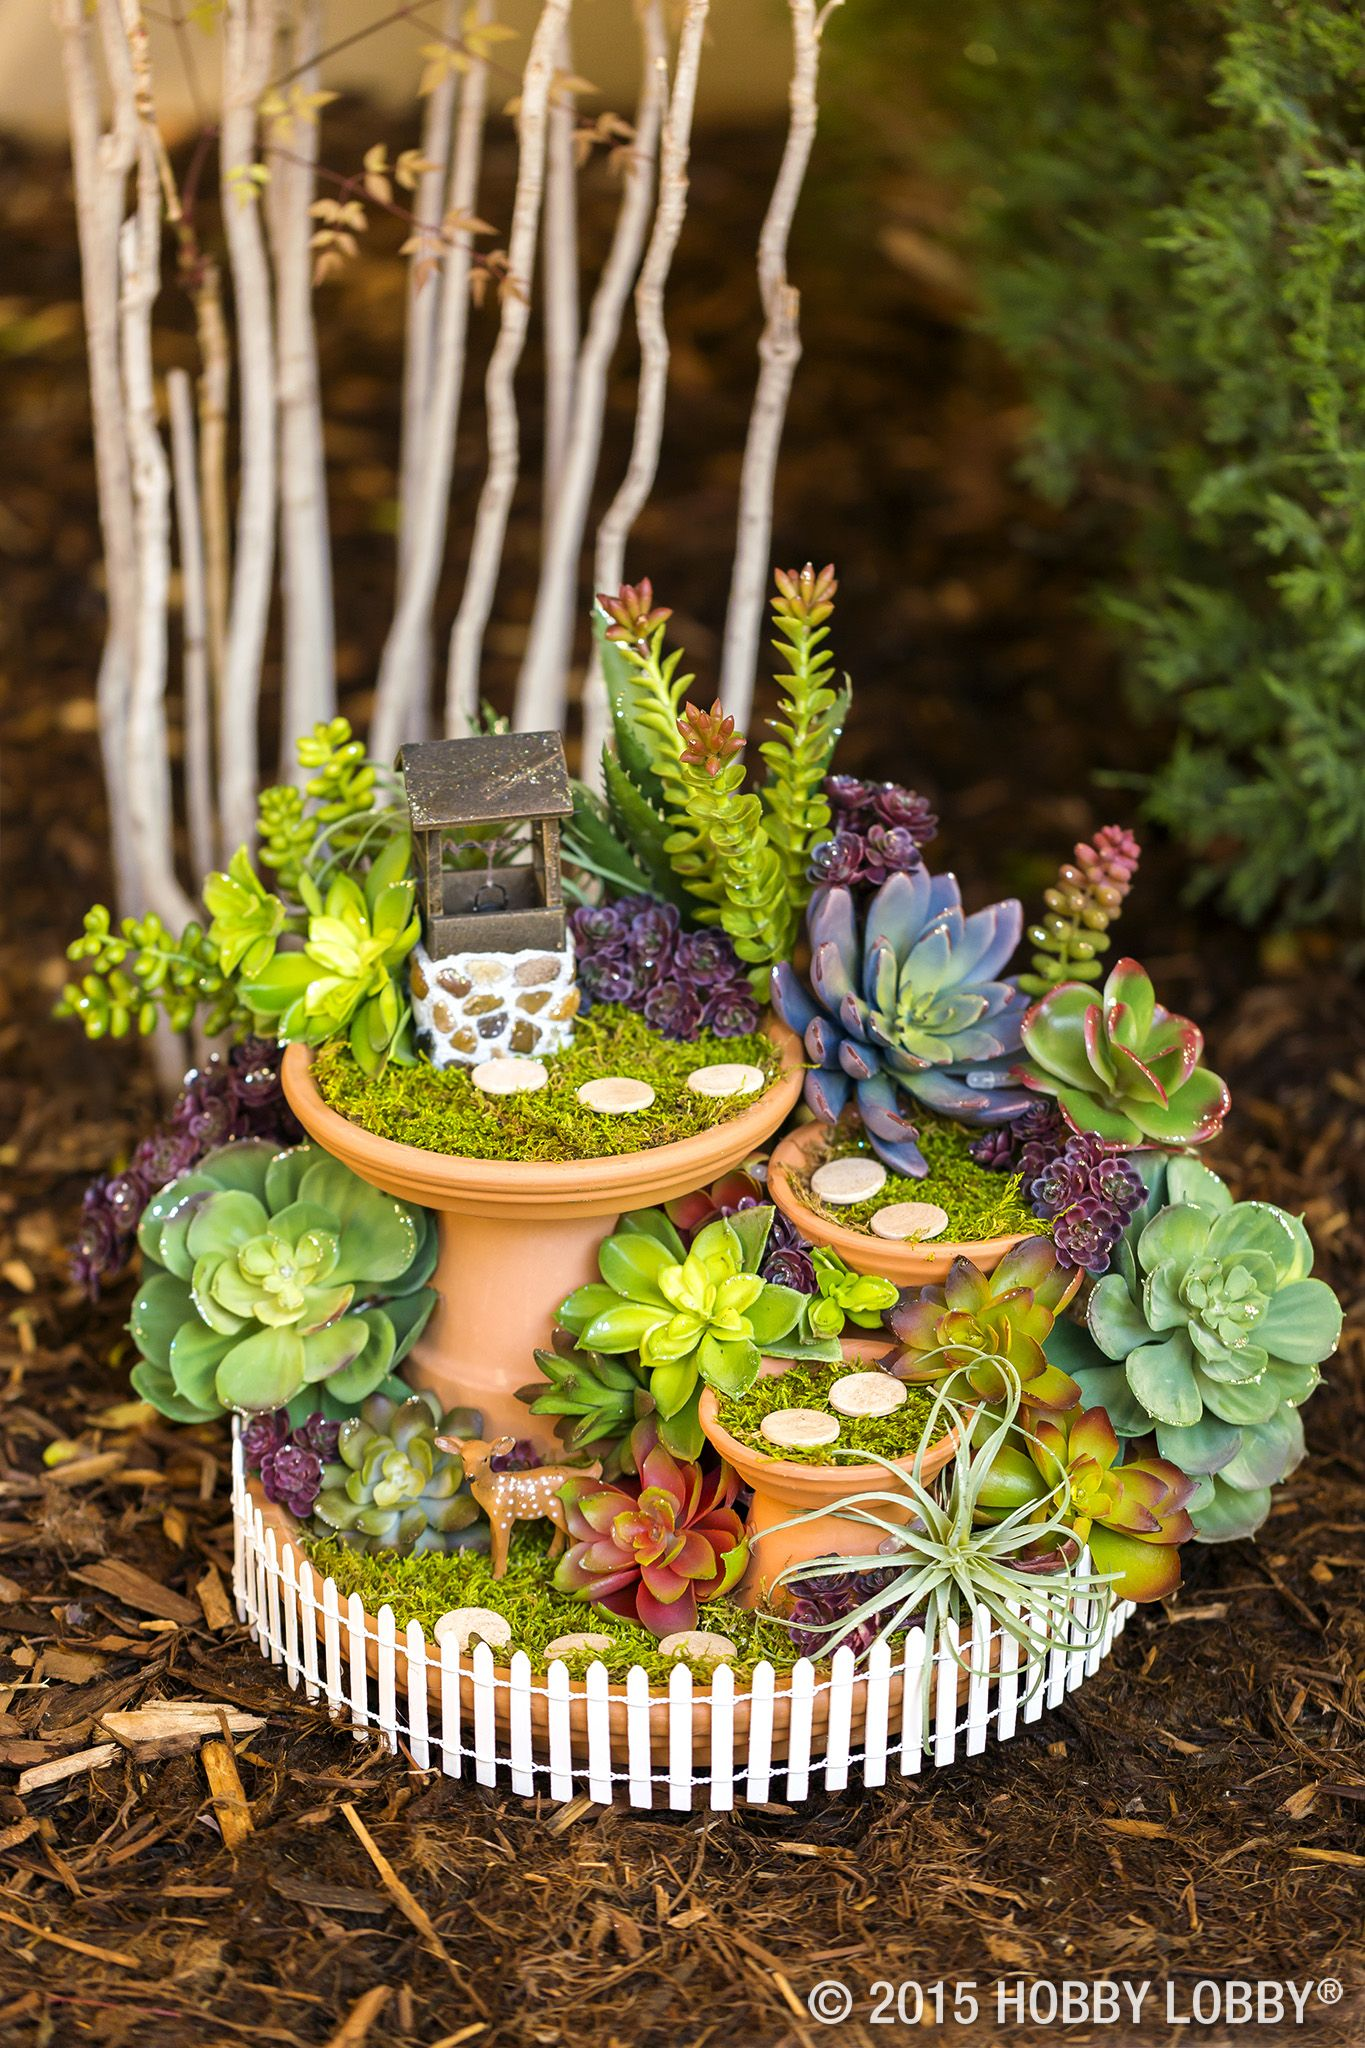 This Mini Fairy Garden Starts With Pots And Saucers In Varied Sizes Glue Saucers To Overturned Pots F Miniature Fairy Garden Diy Fairy Garden Mini Fairy Garden